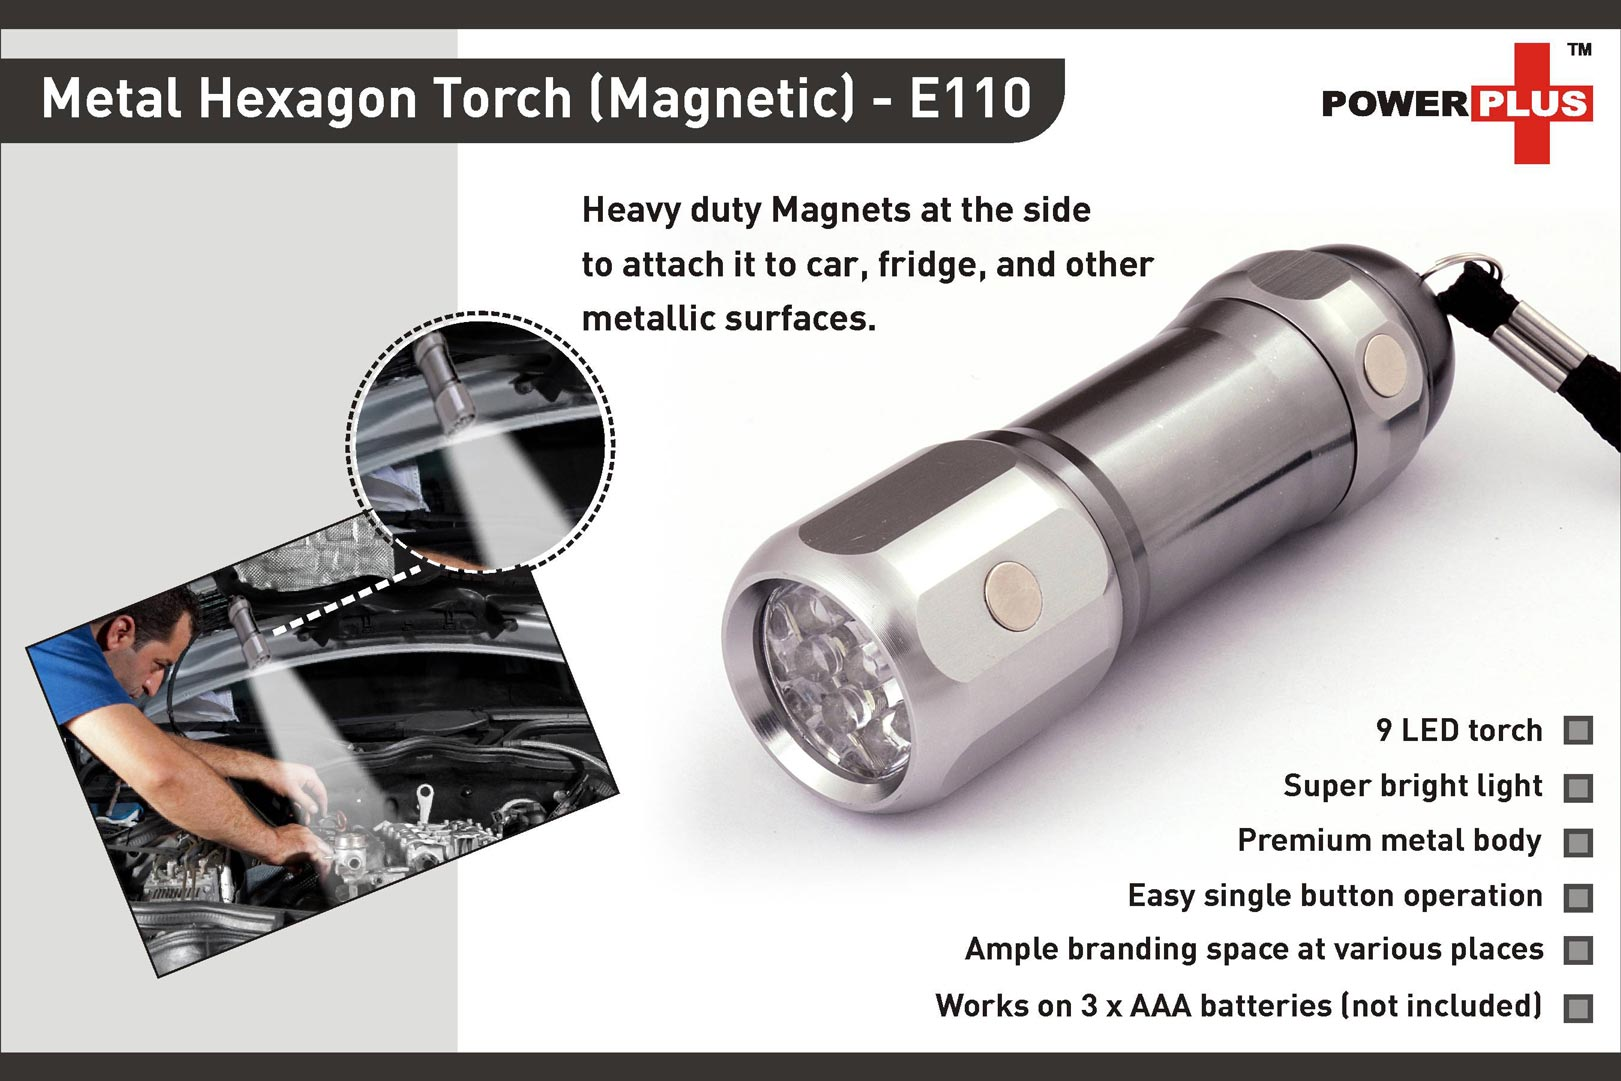 E110 - Hexa Metal torch (magnetic) (9 LED)